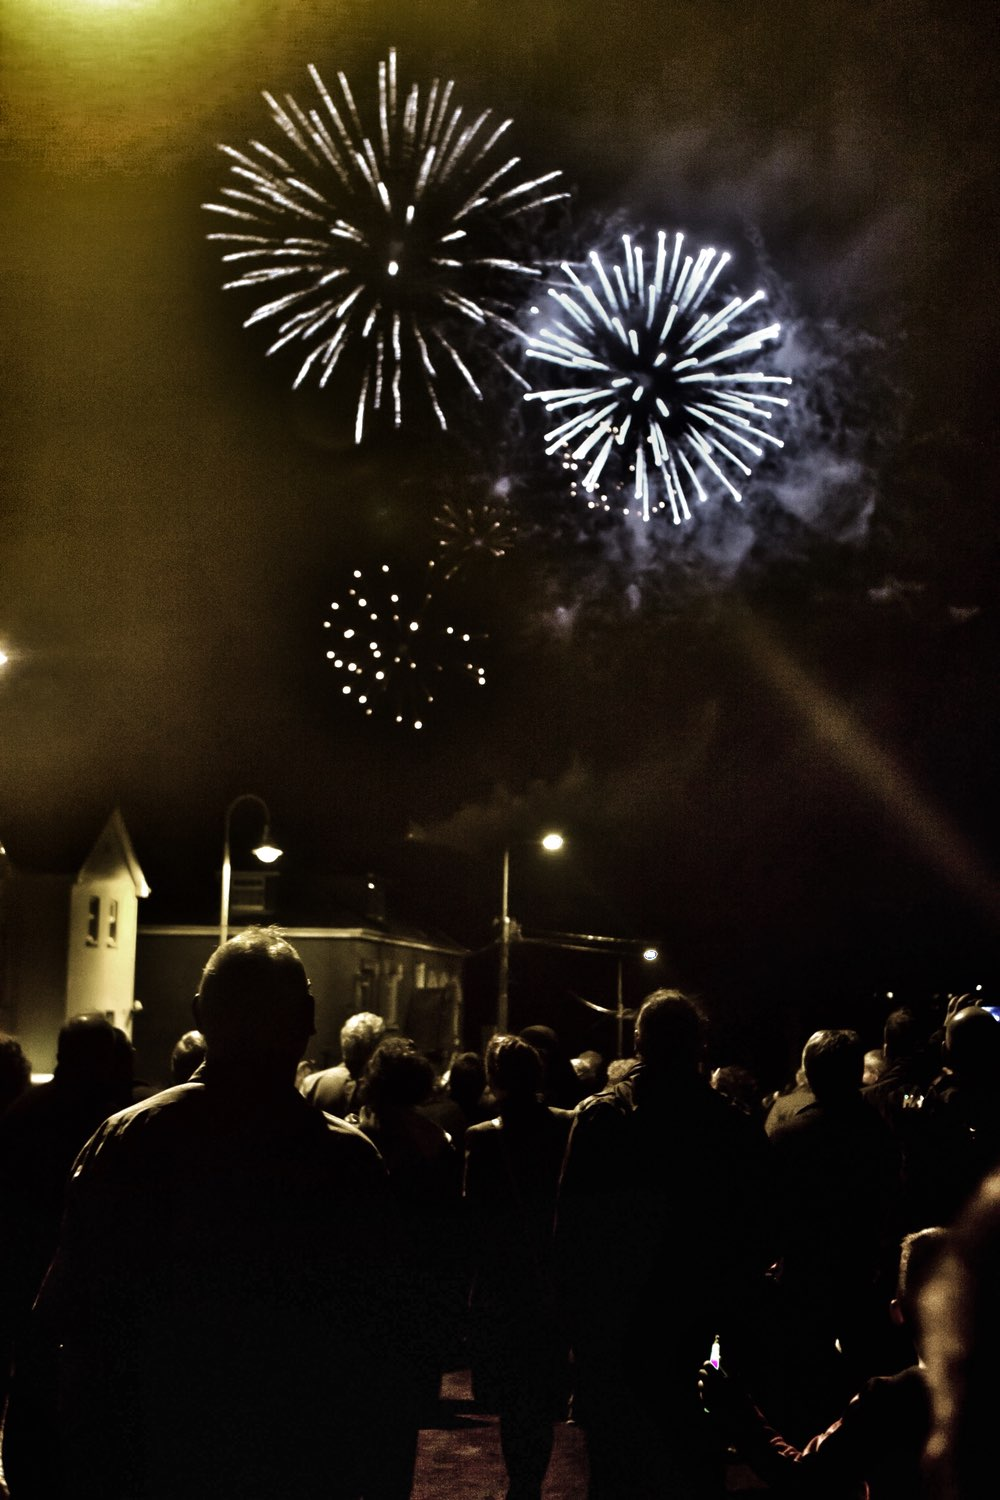 Fireworks show at the Clifden Arts Festival